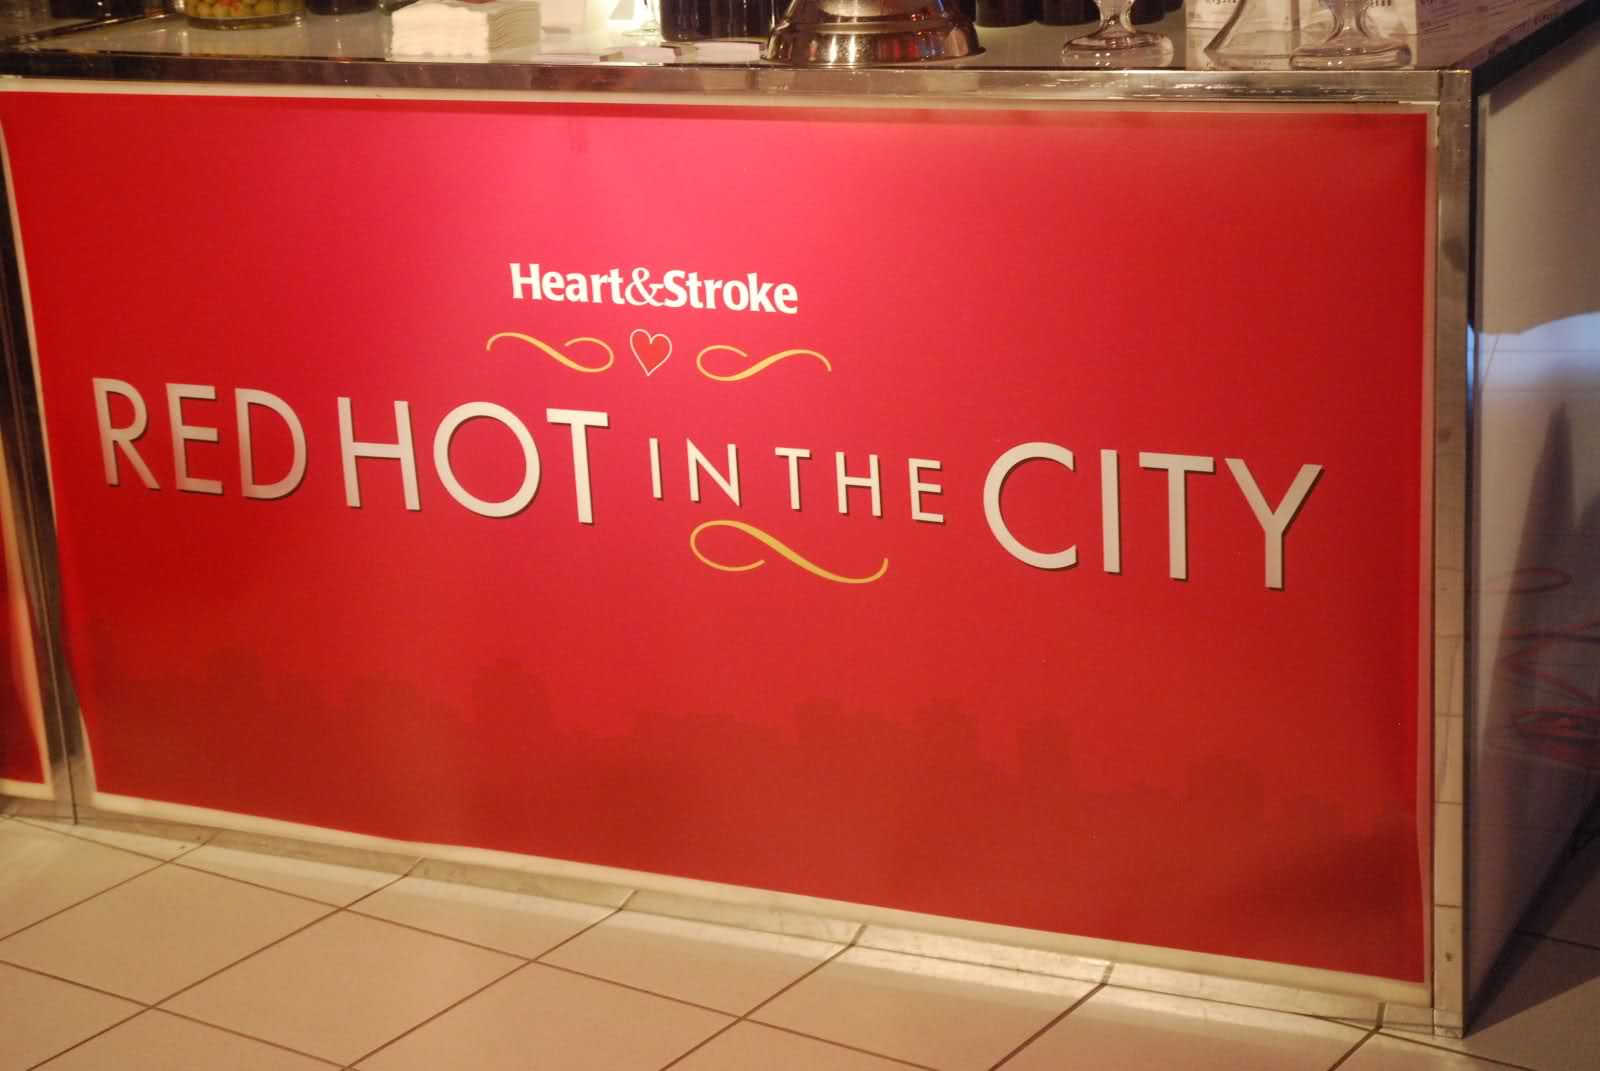 Red Hot In the City of Halifax